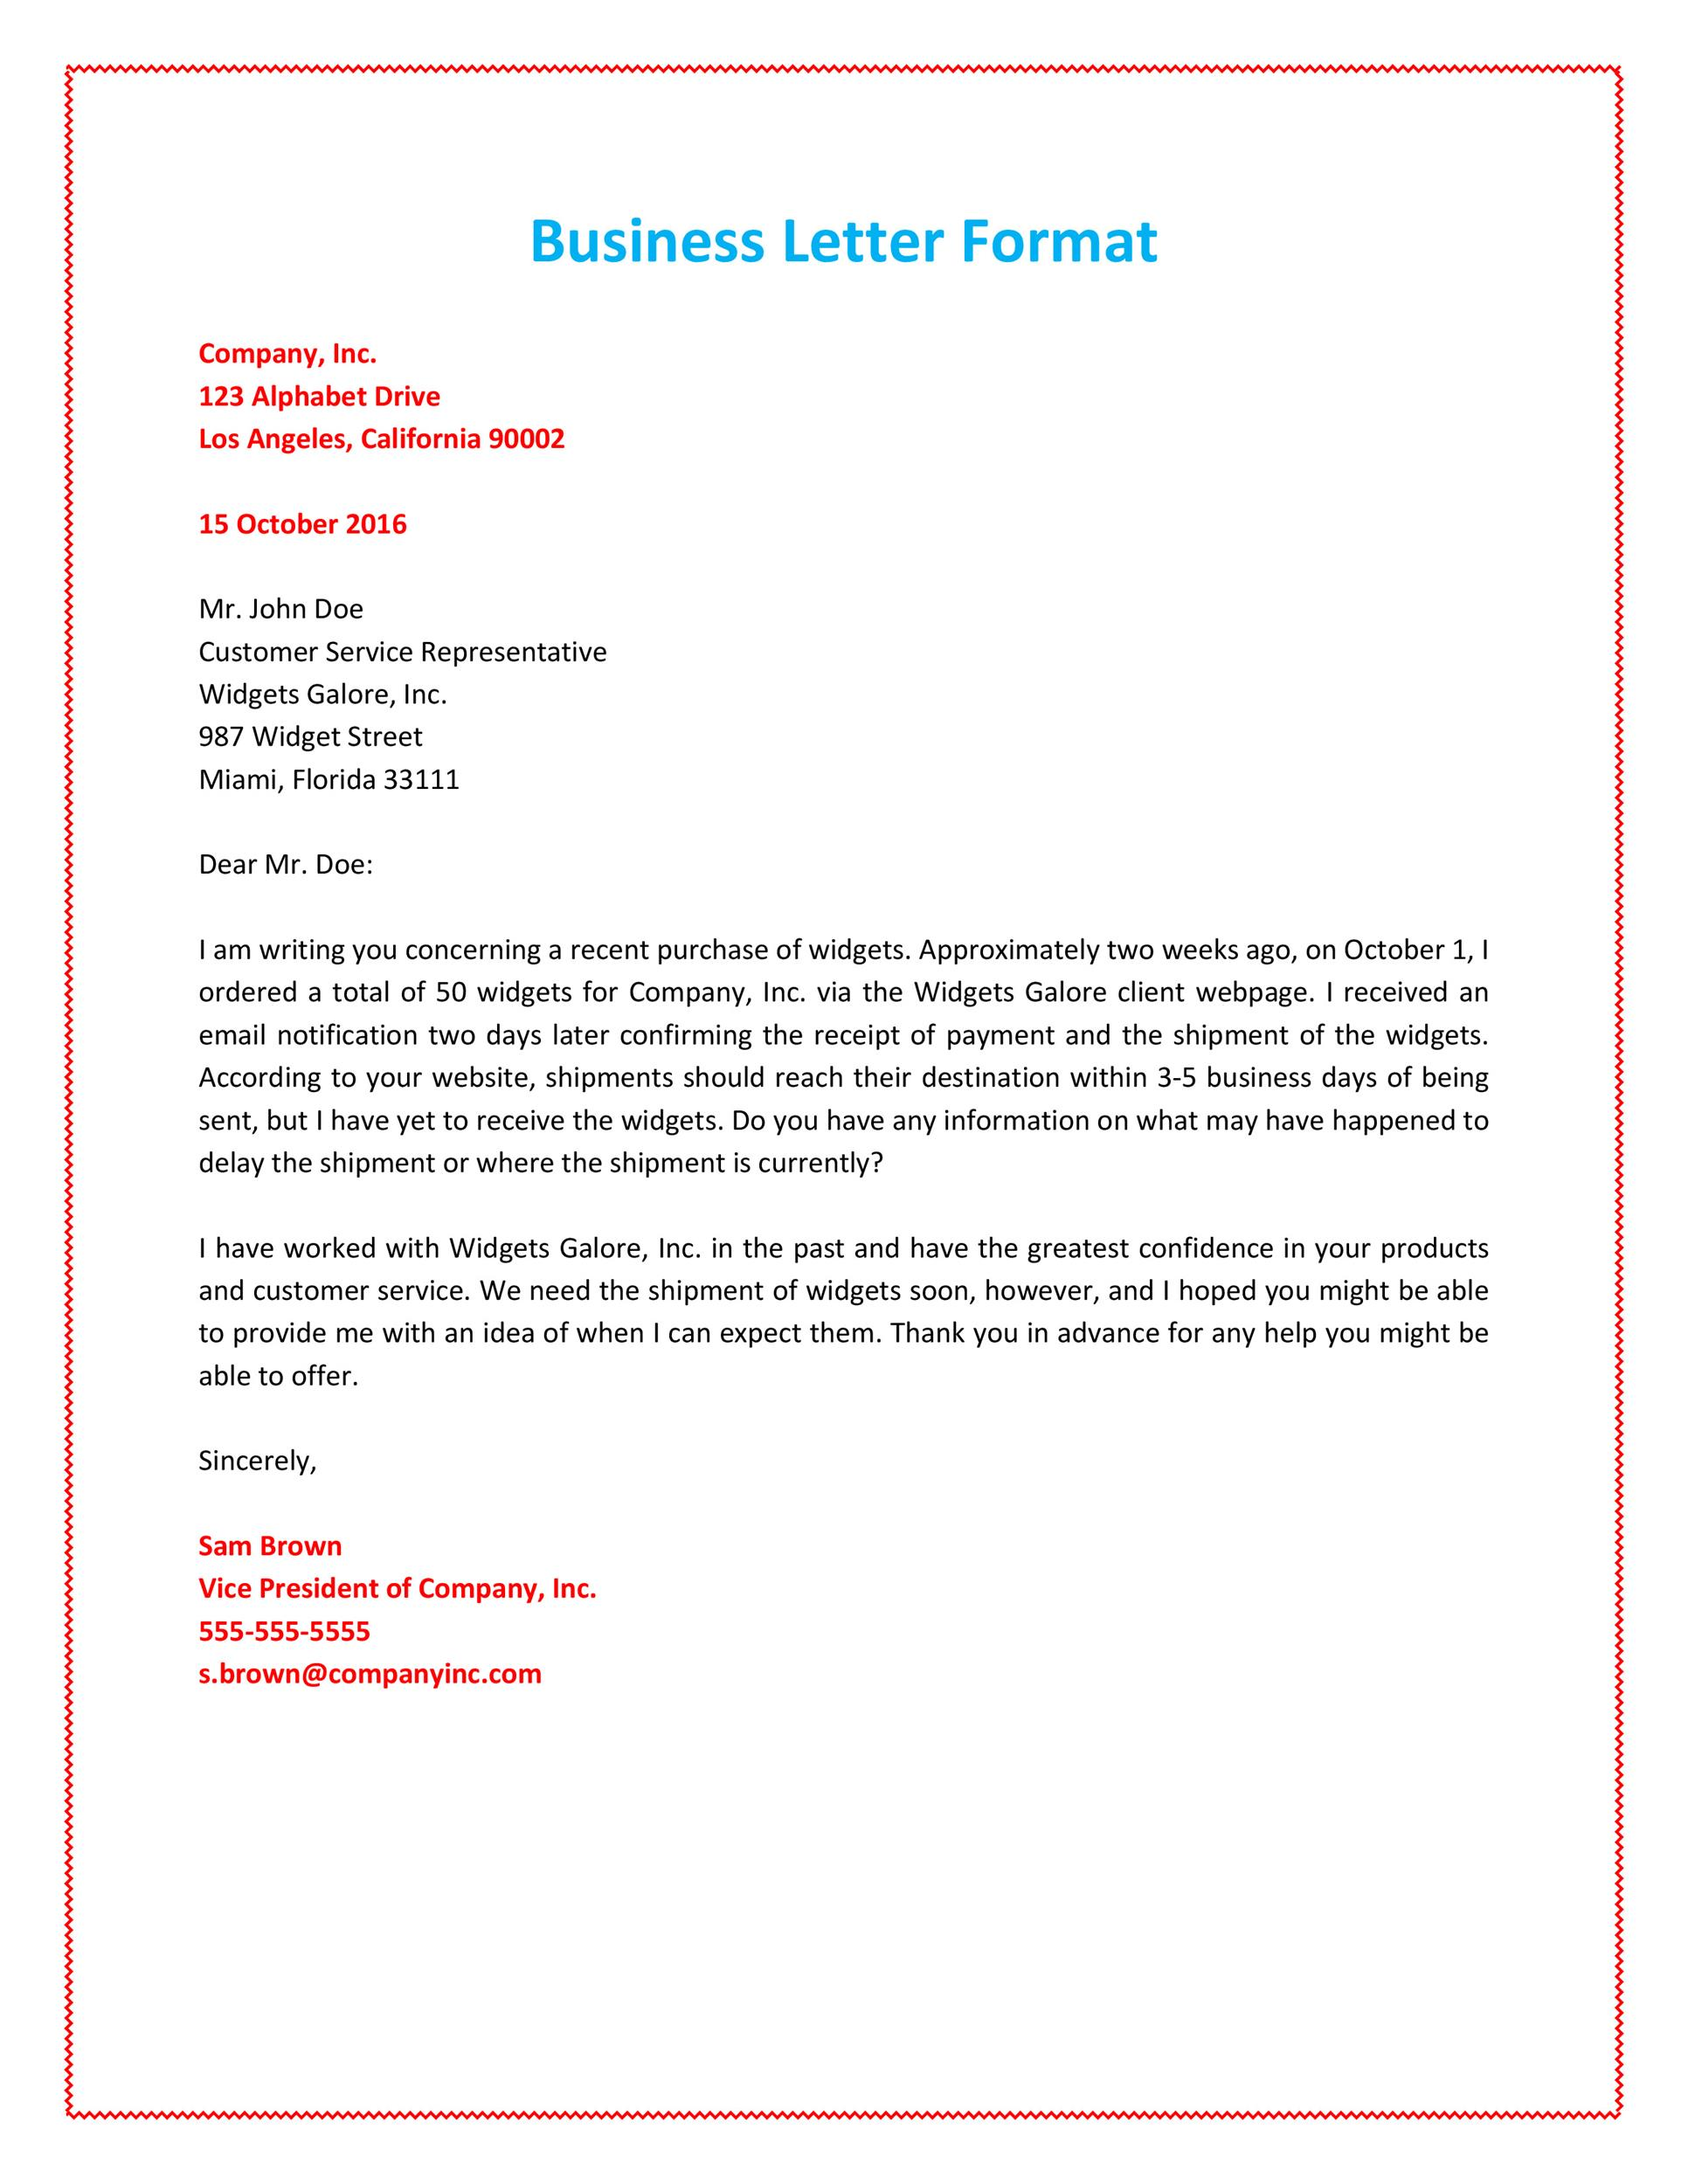 35 formal business letter format templates examples template lab business letter format example altavistaventures